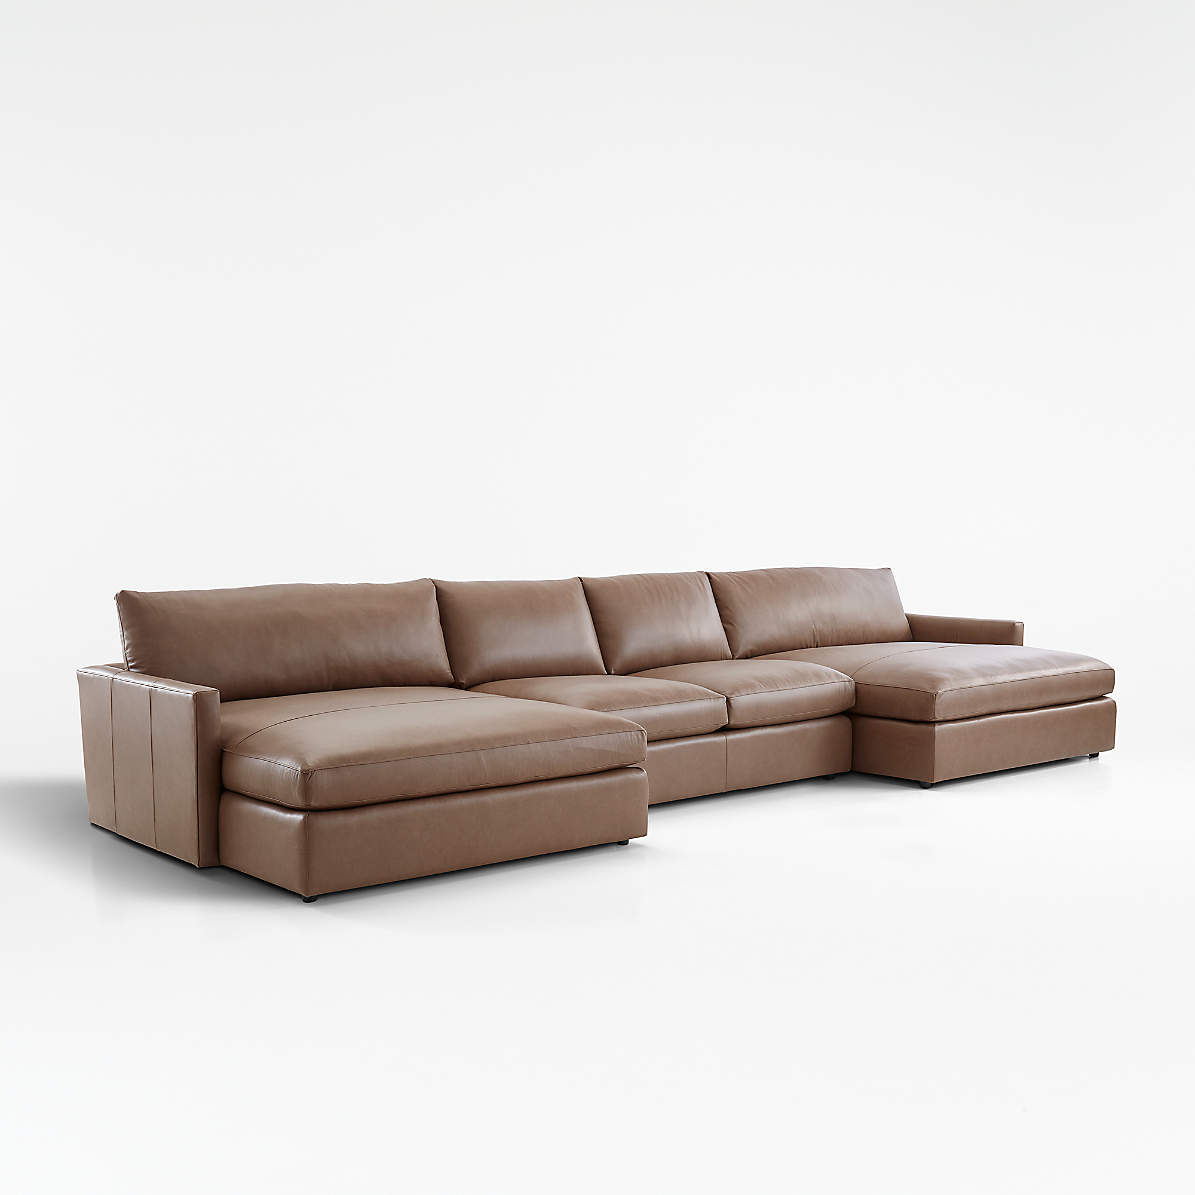 Lounge Ii Leather 3 Piece Double Chaise Sectional Sofa Crate And Barrel